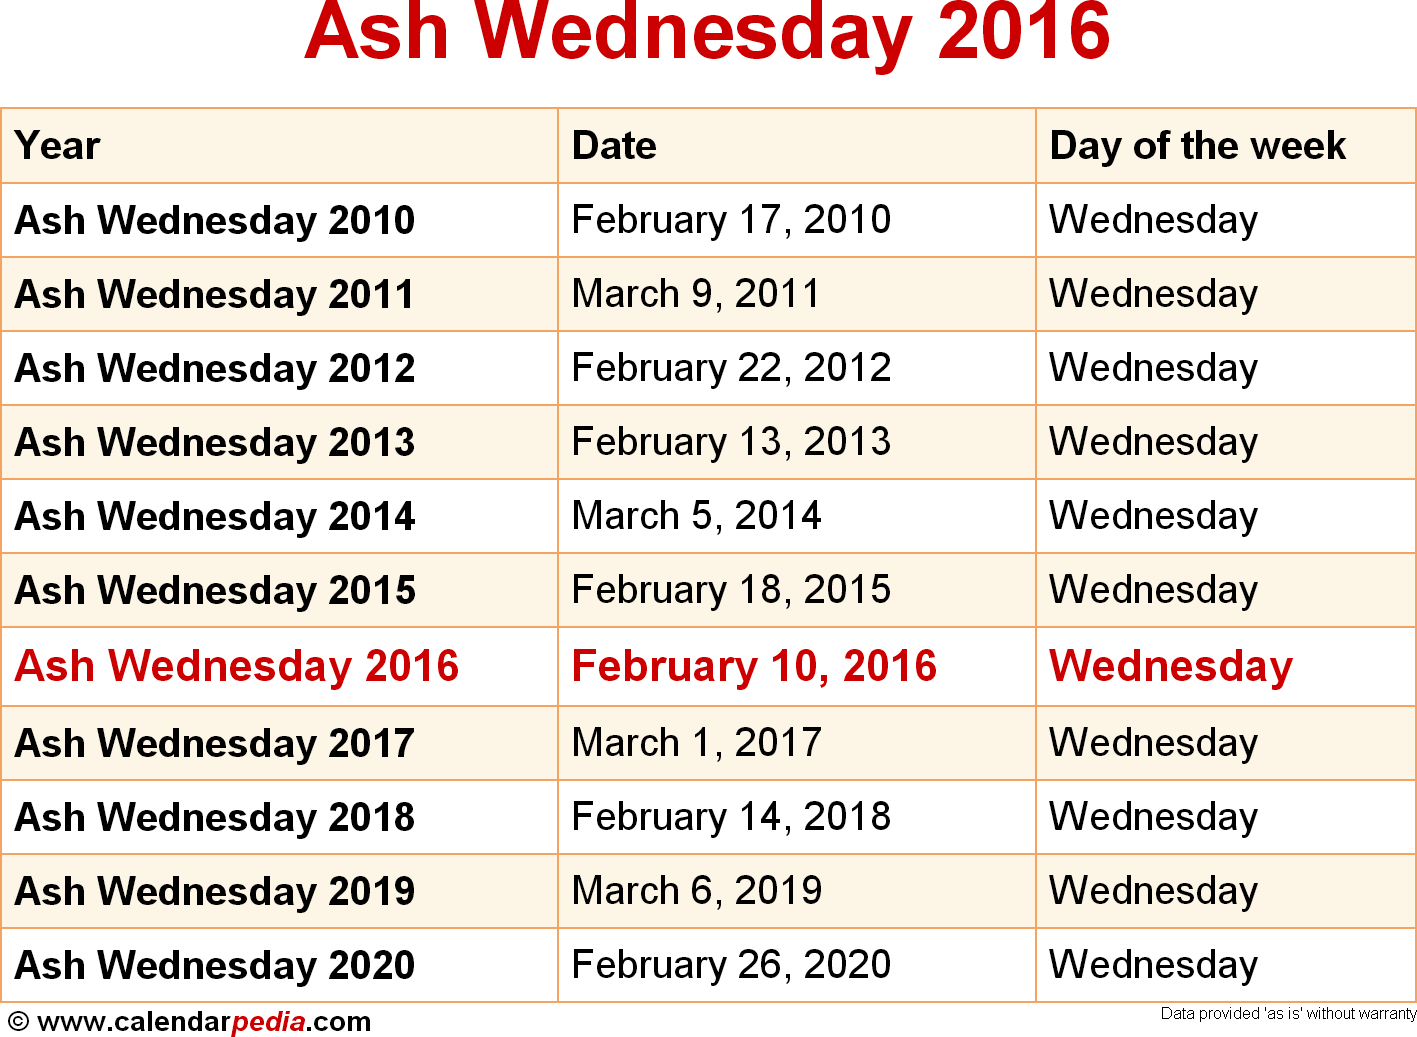 When is Ash Wednesday 2016 & 2017? Dates of Ash Wednesday